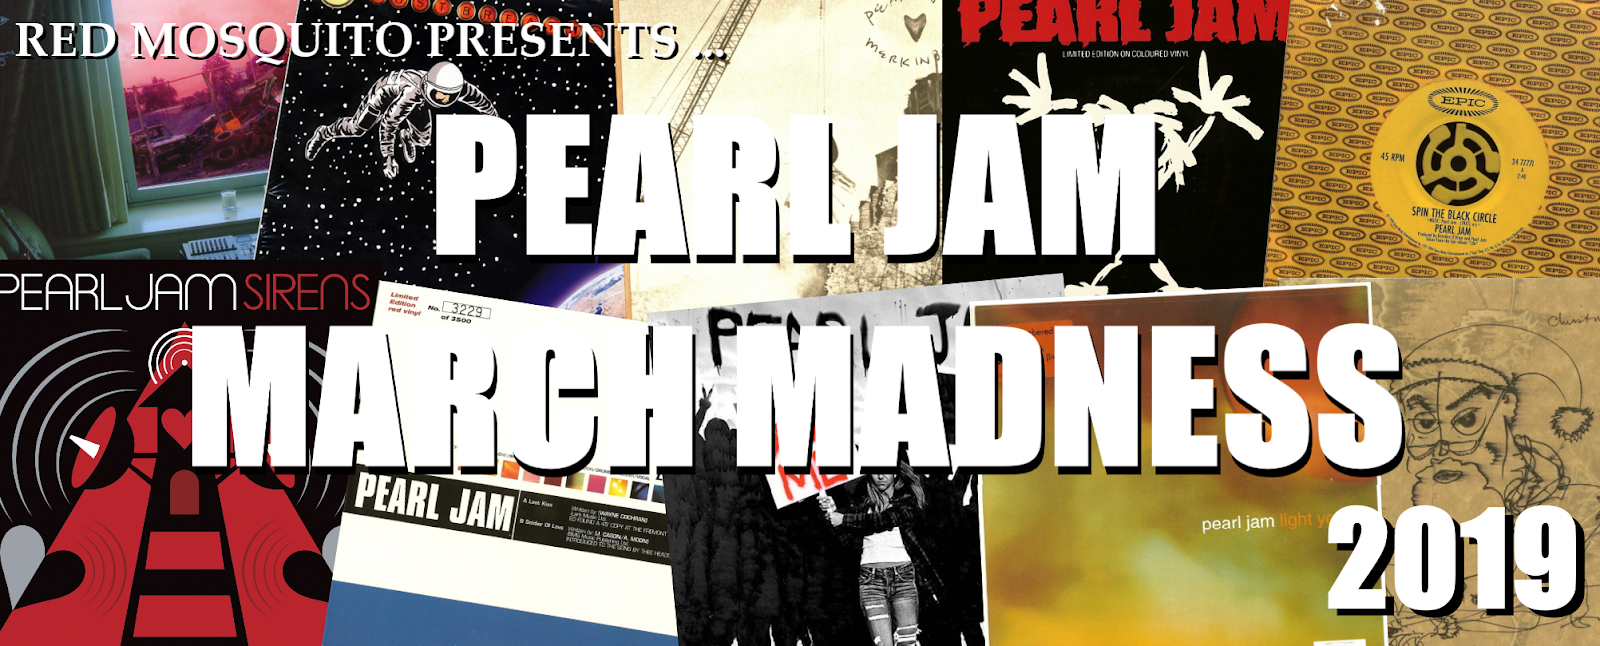 THE SKY I SCRAPE: Pearl Jam March Madness Starts Now!